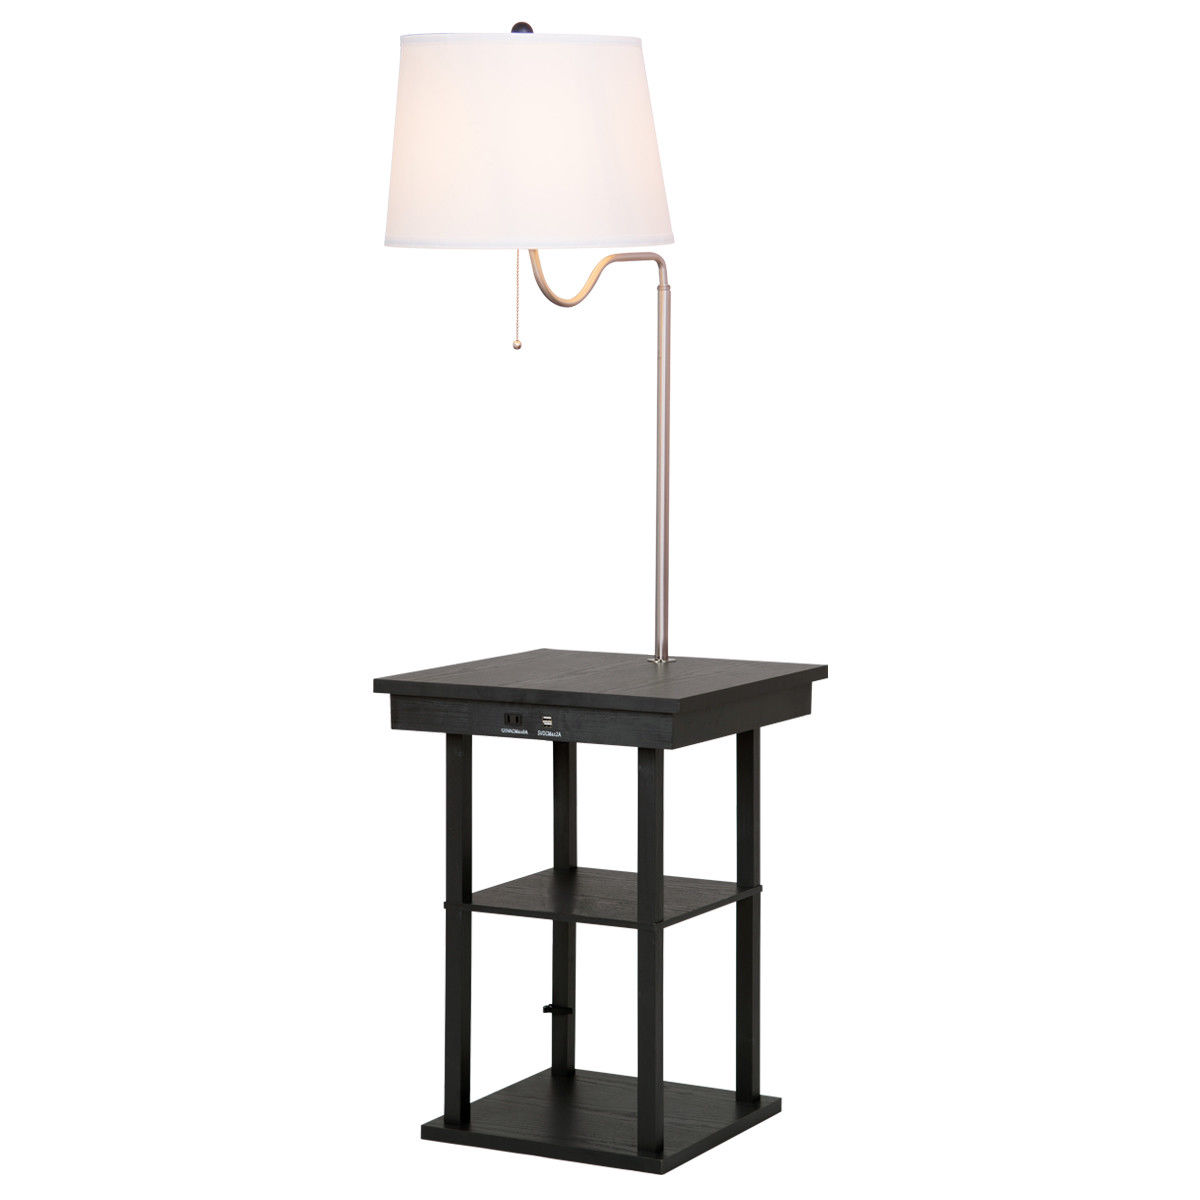 Gymax Floor Lamp Swing Arm Lamp Built In End Table w